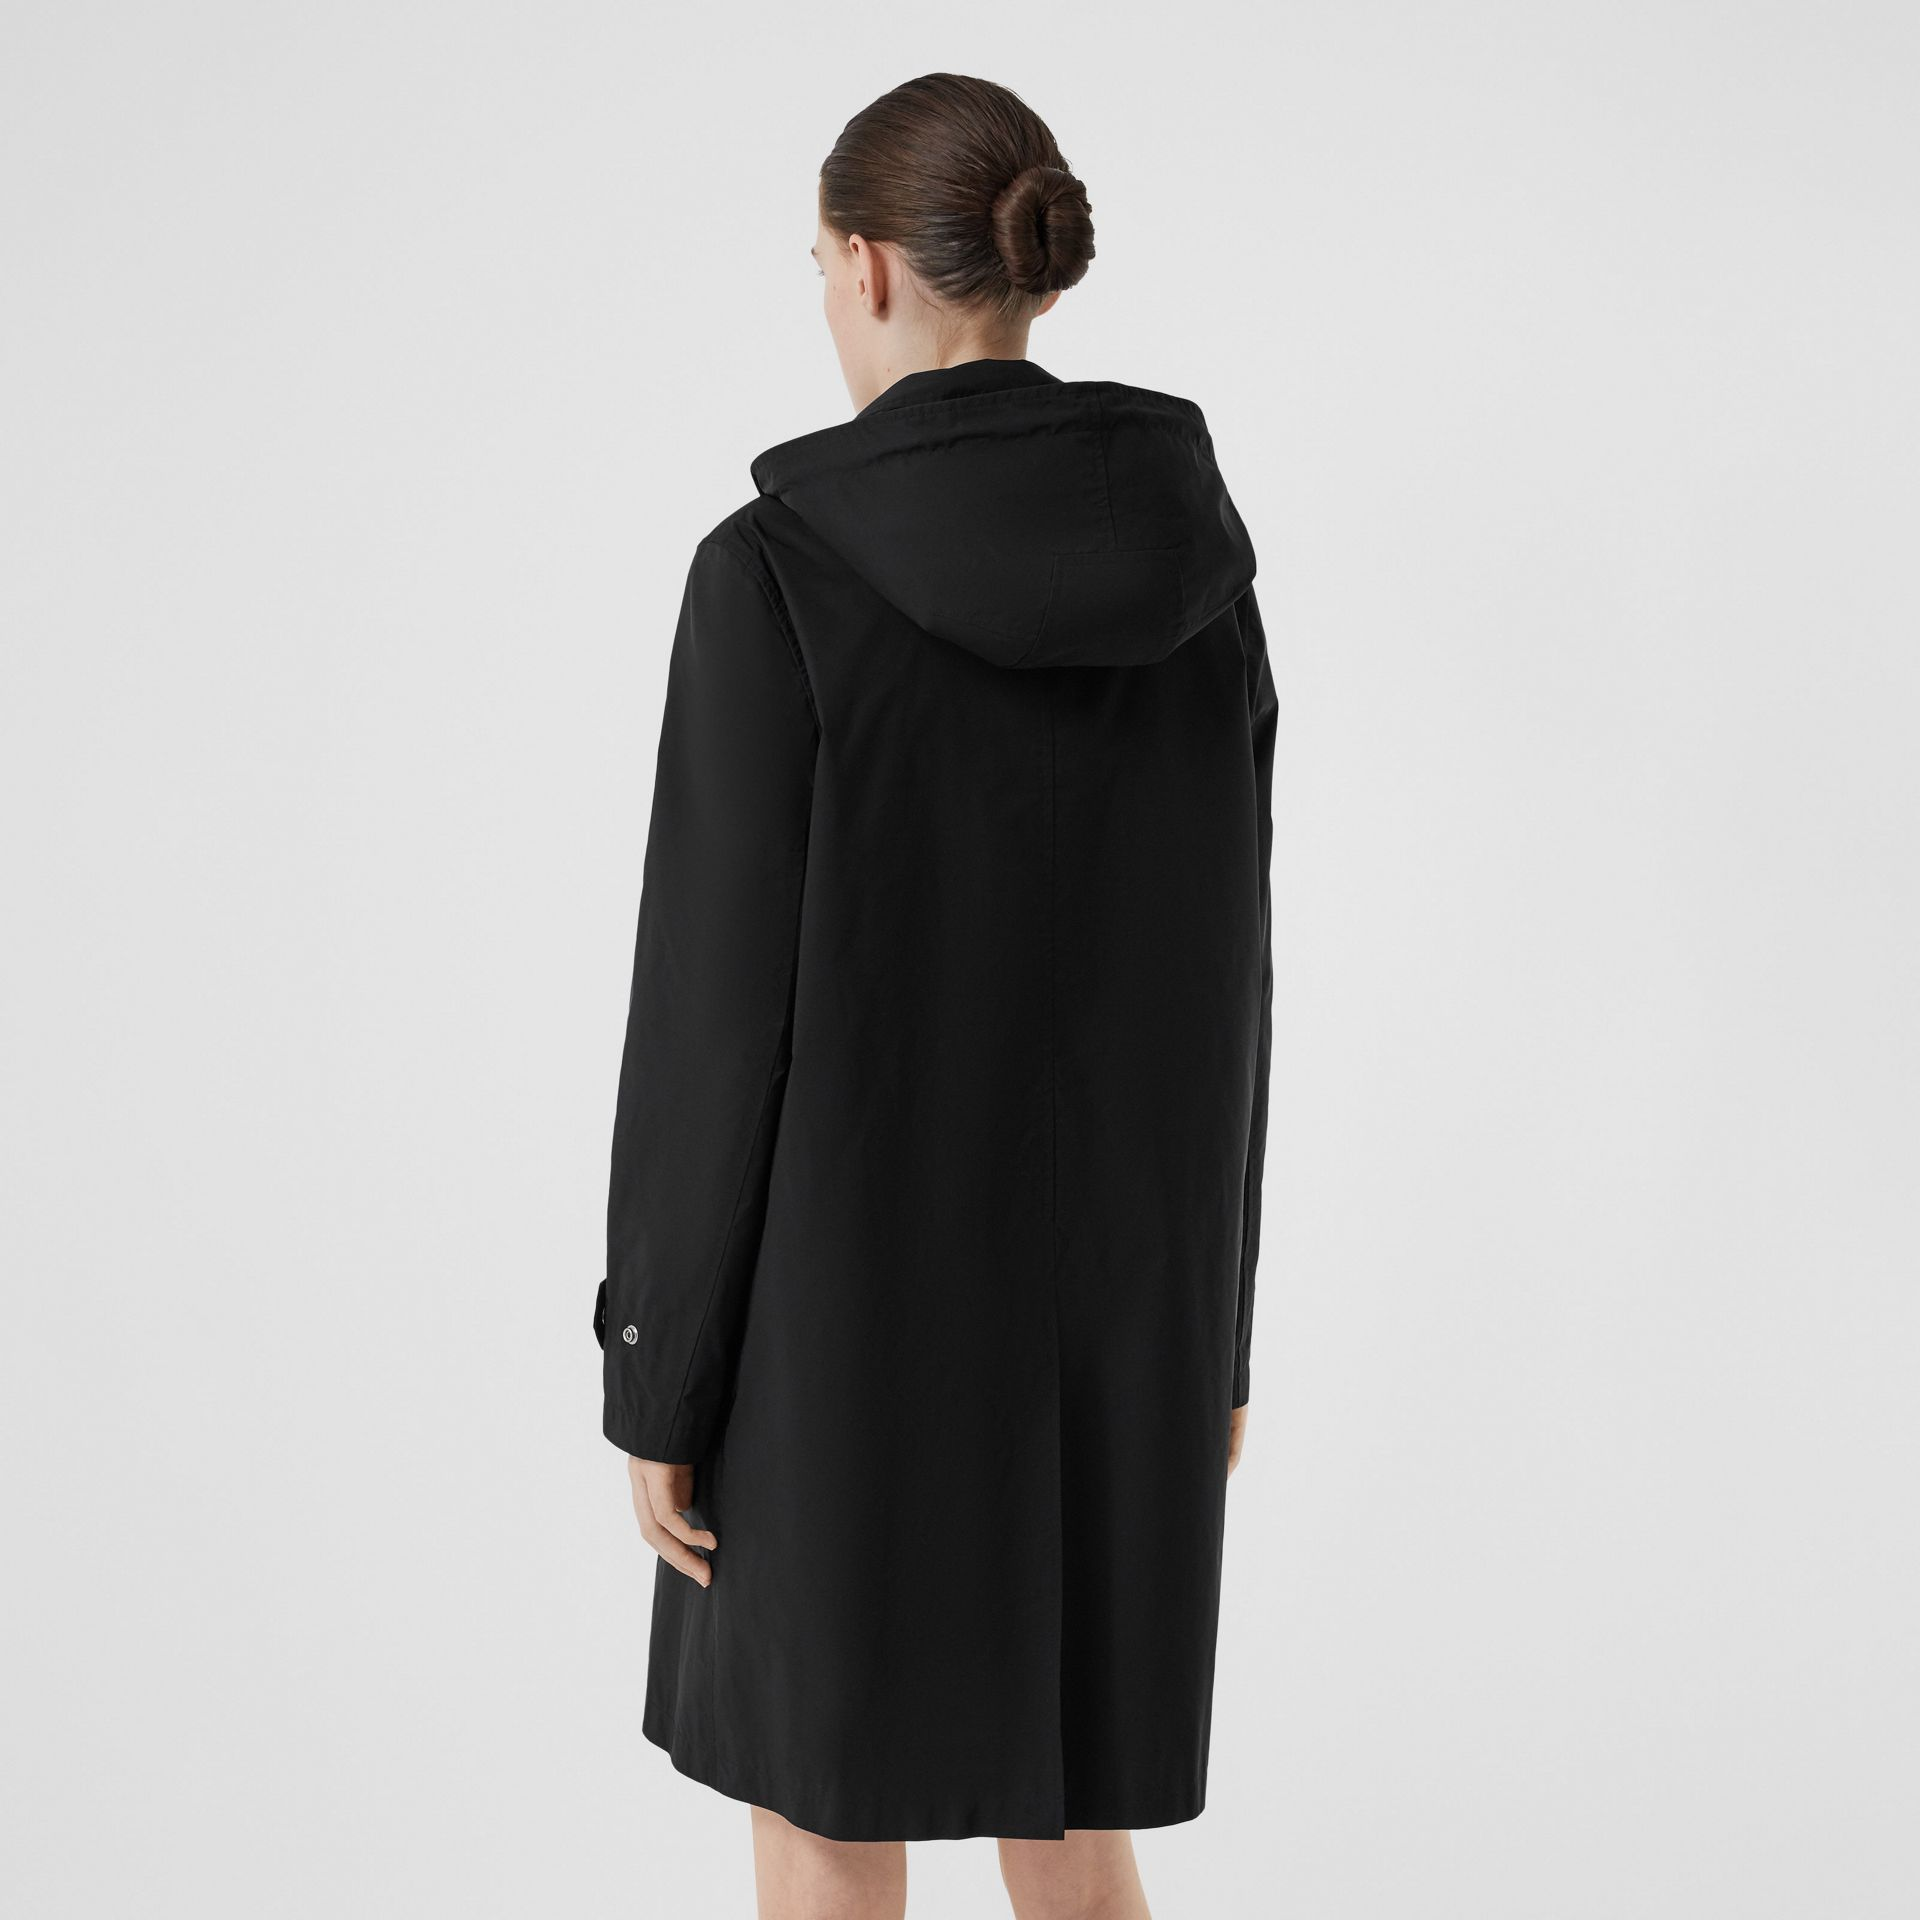 Detachable Hood Shape-memory Taffeta Car Coat in Black - Women | Burberry United Kingdom - gallery image 2